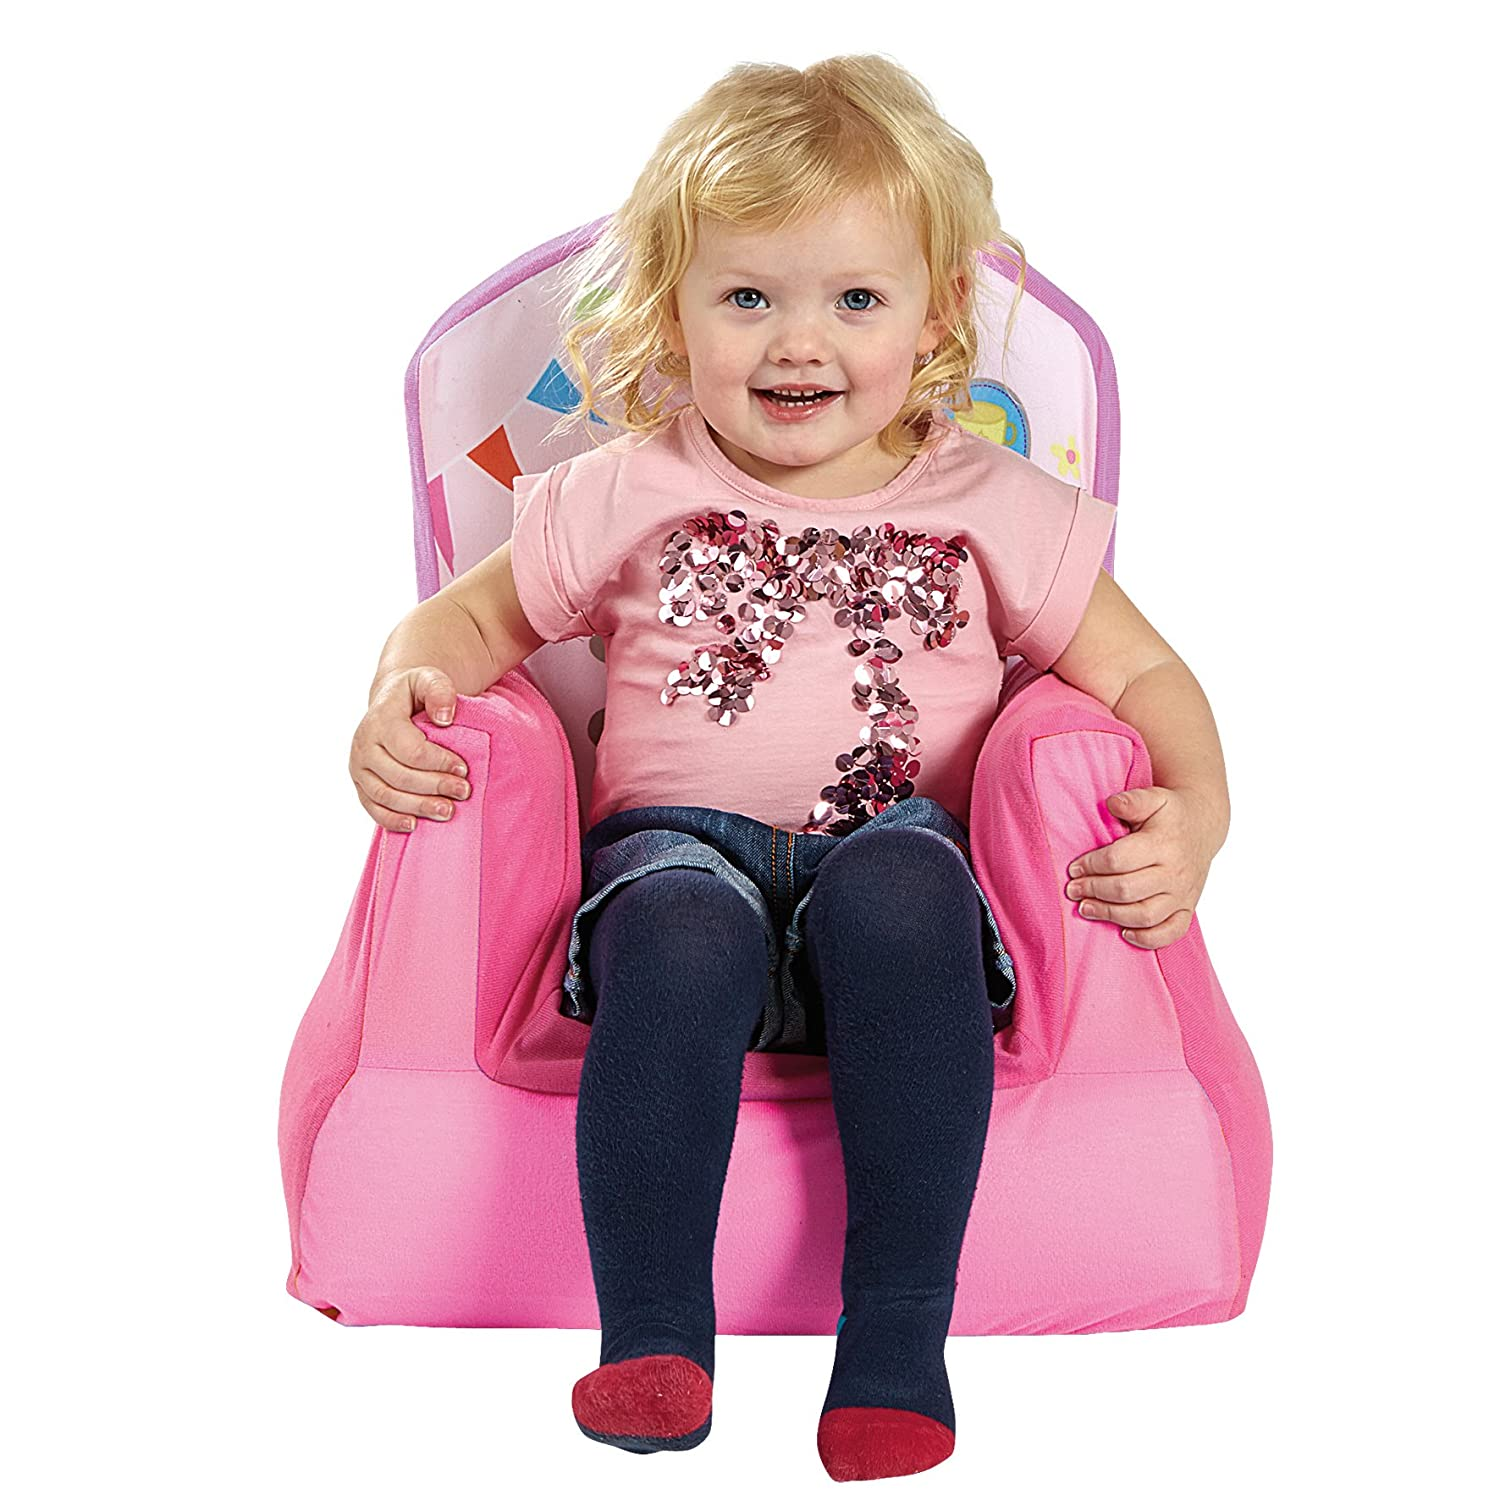 Peppa Pig Inflatable Chair For Kids Peppa Pig Amazon